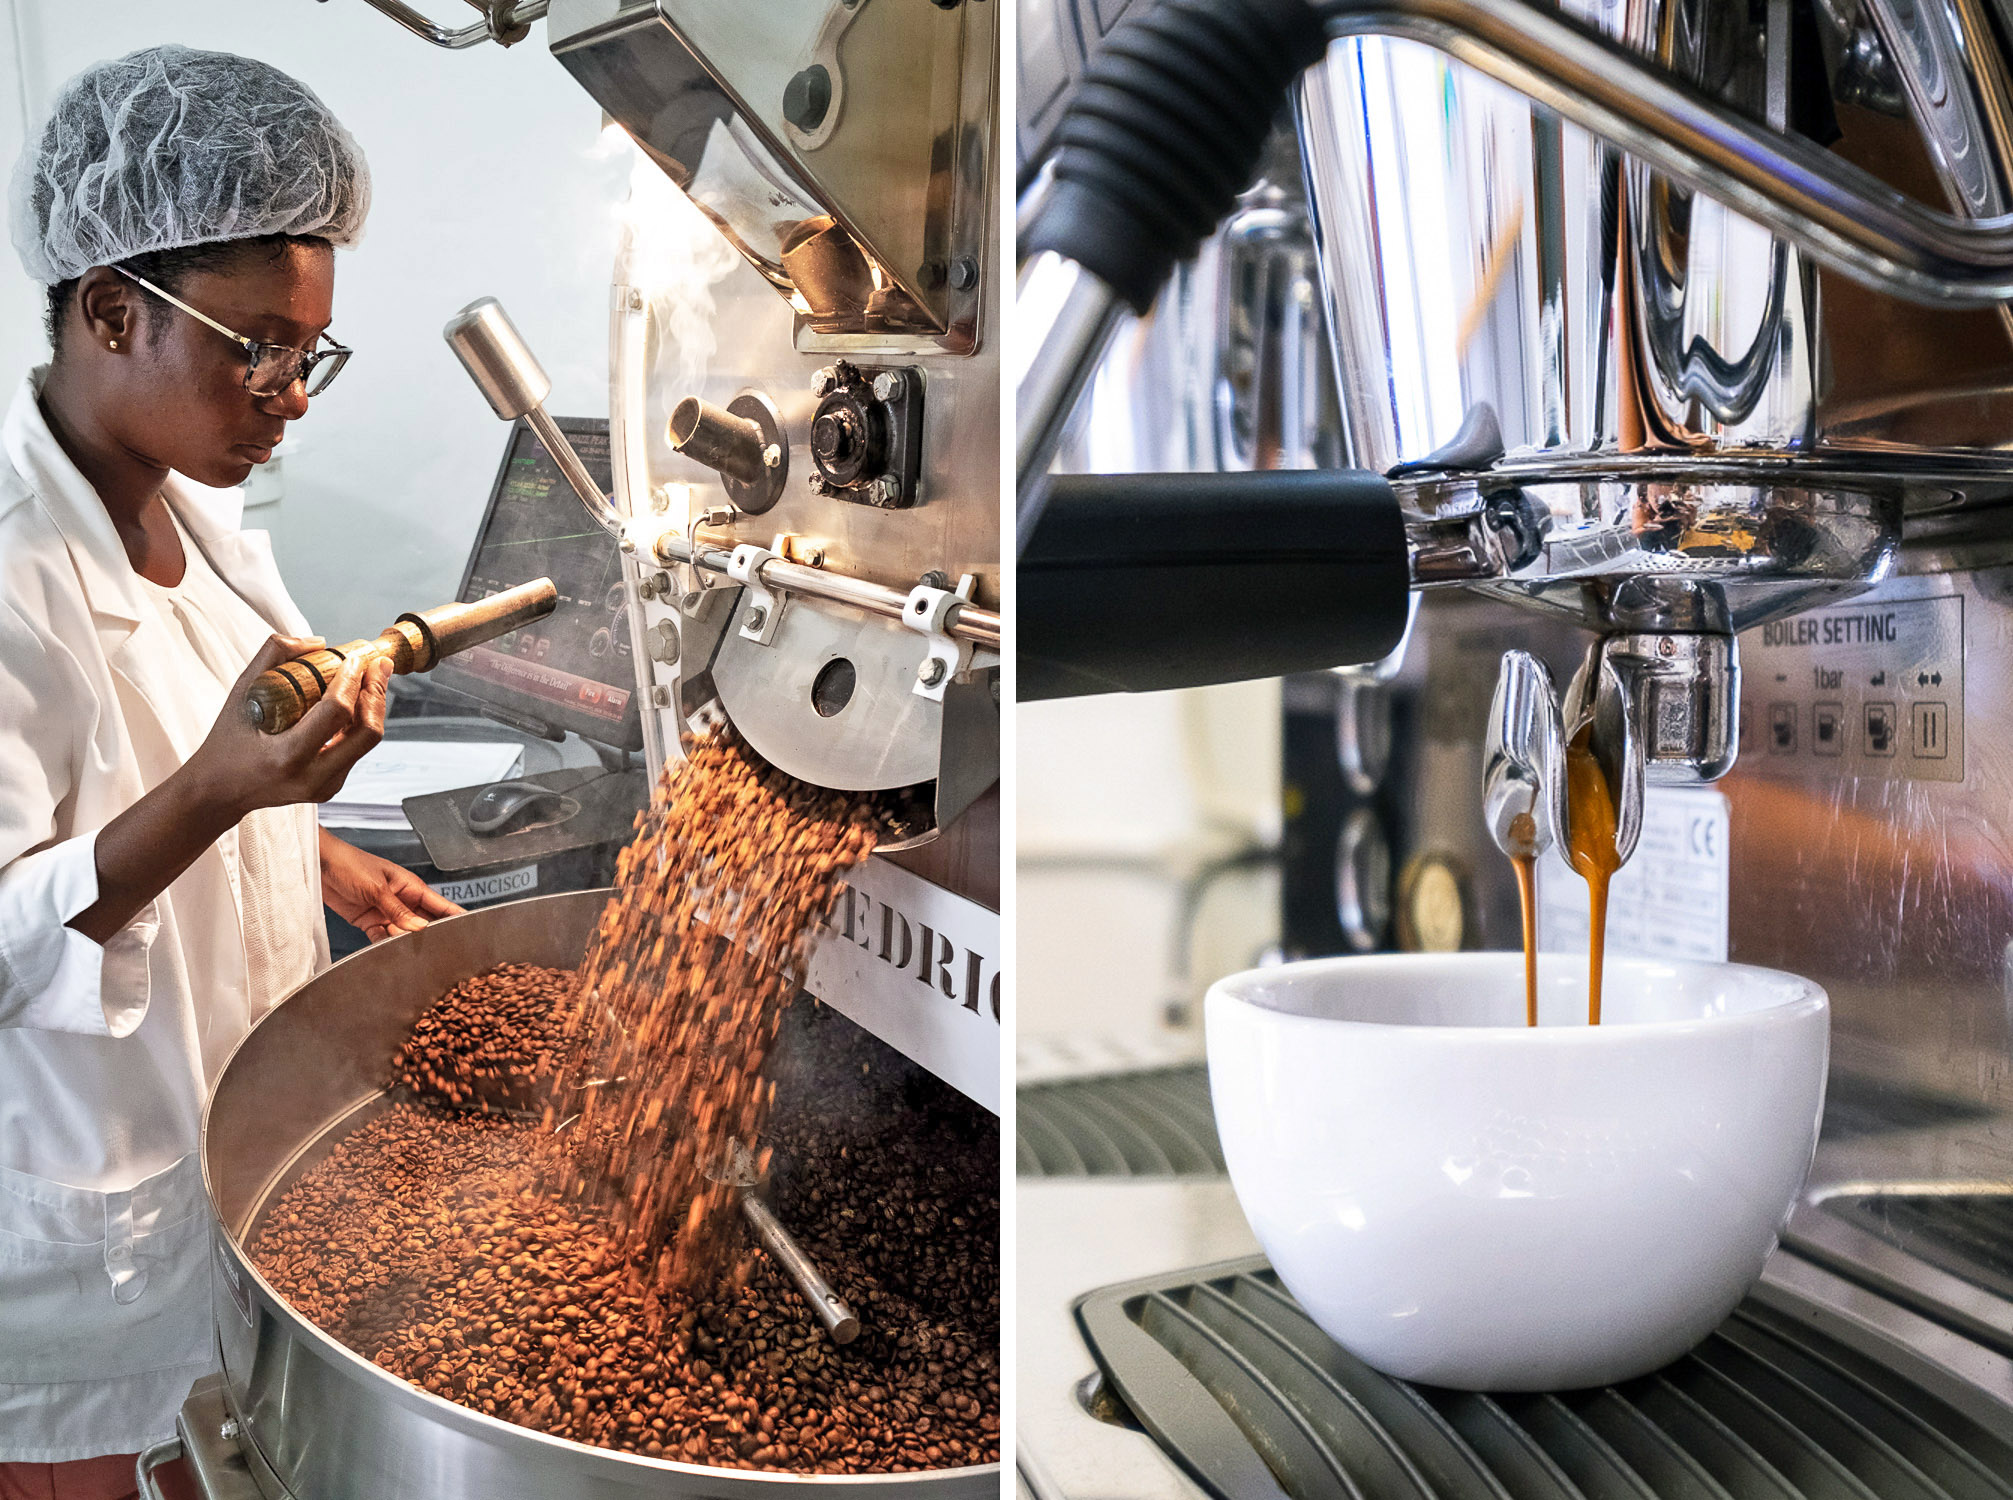 Wyndhams Coffee roastery in Christ Church     A 5-Day Itinerary of What to See and Eat around Barbados